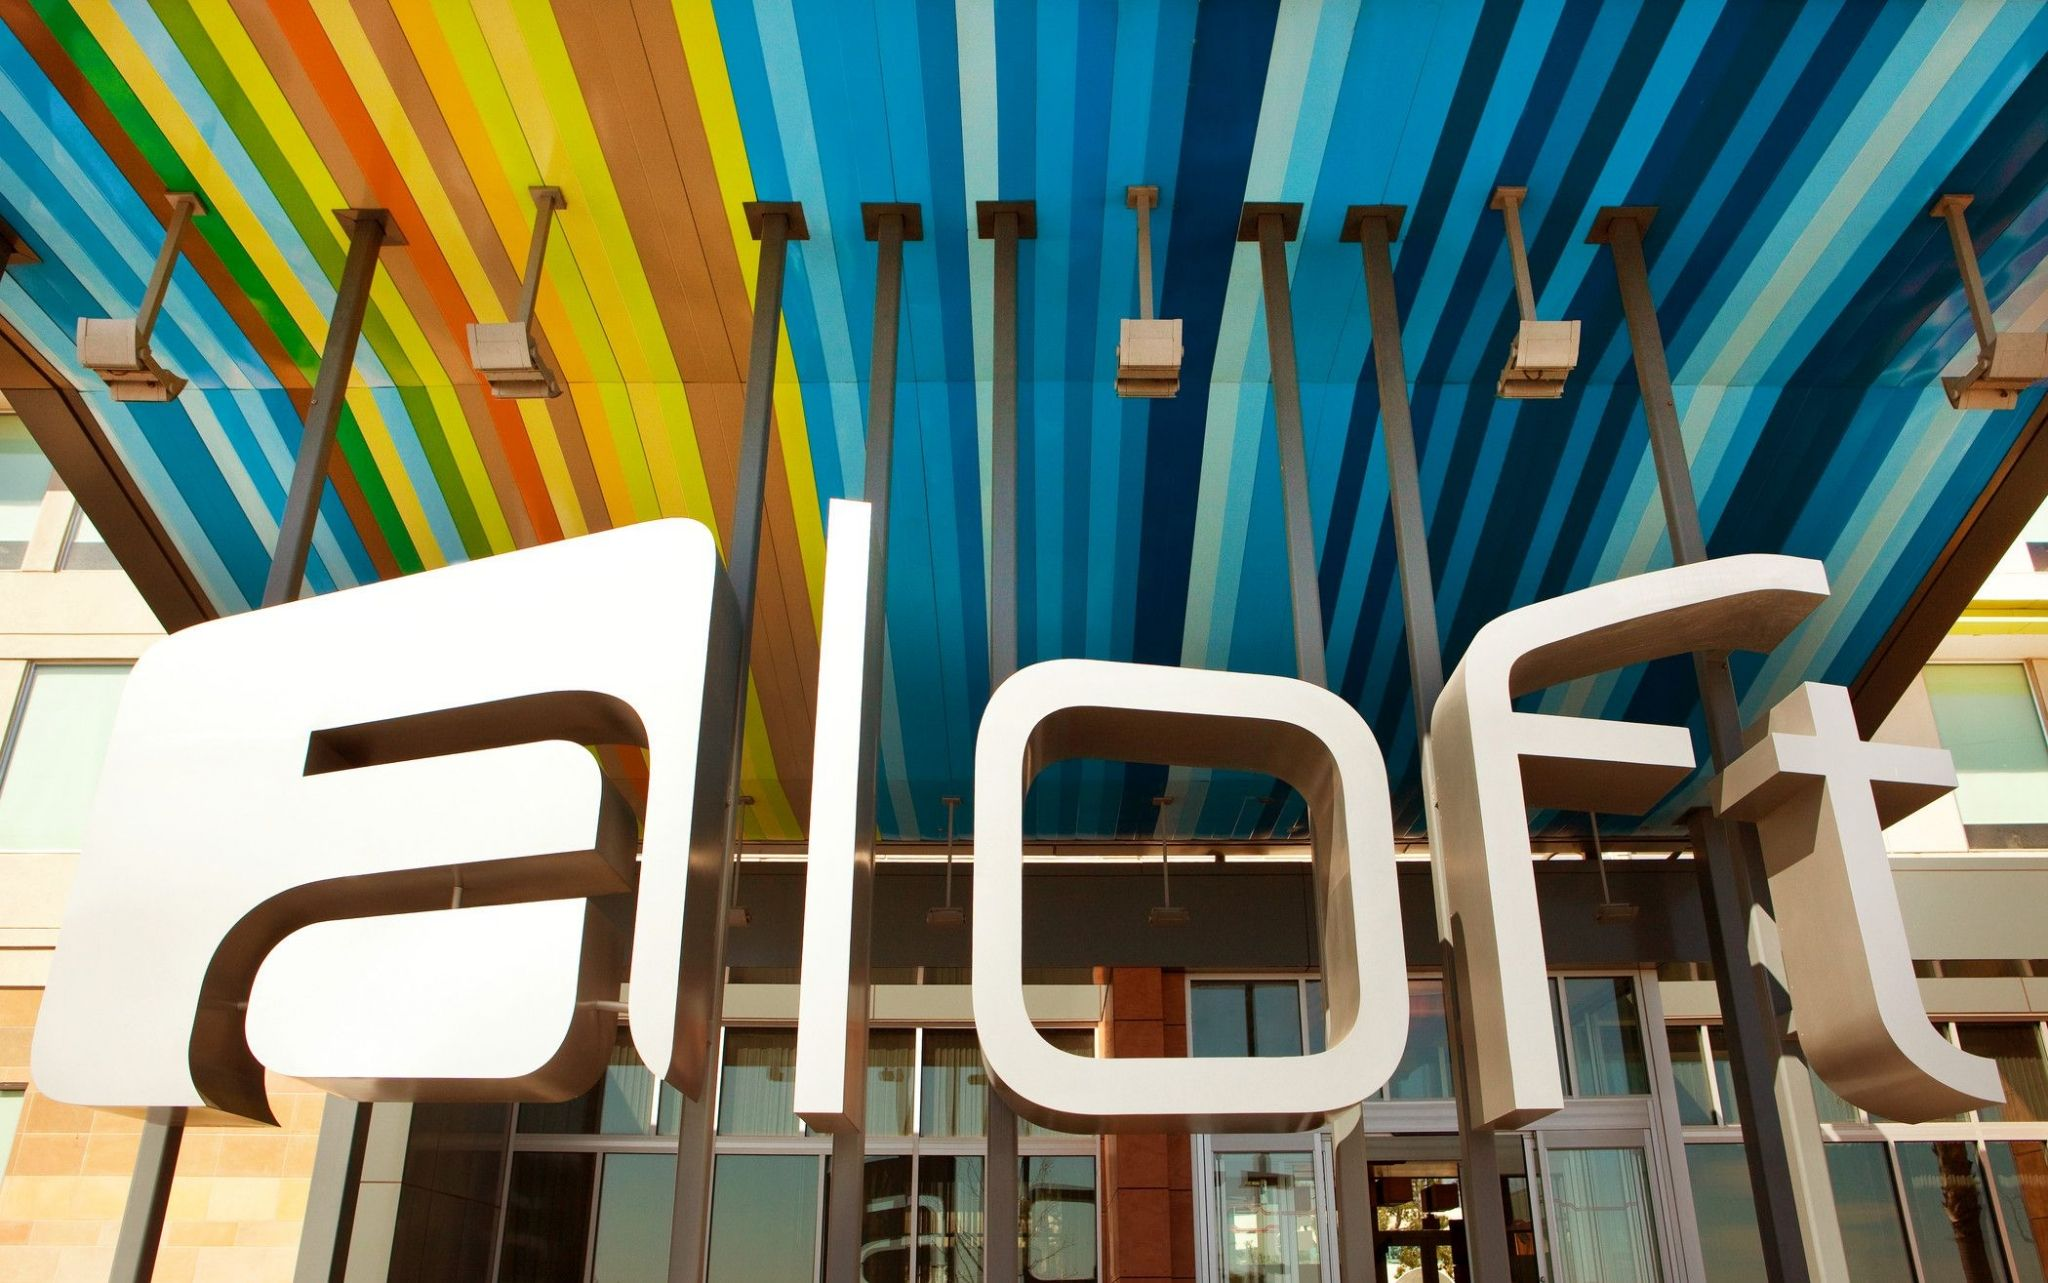 Aloft features